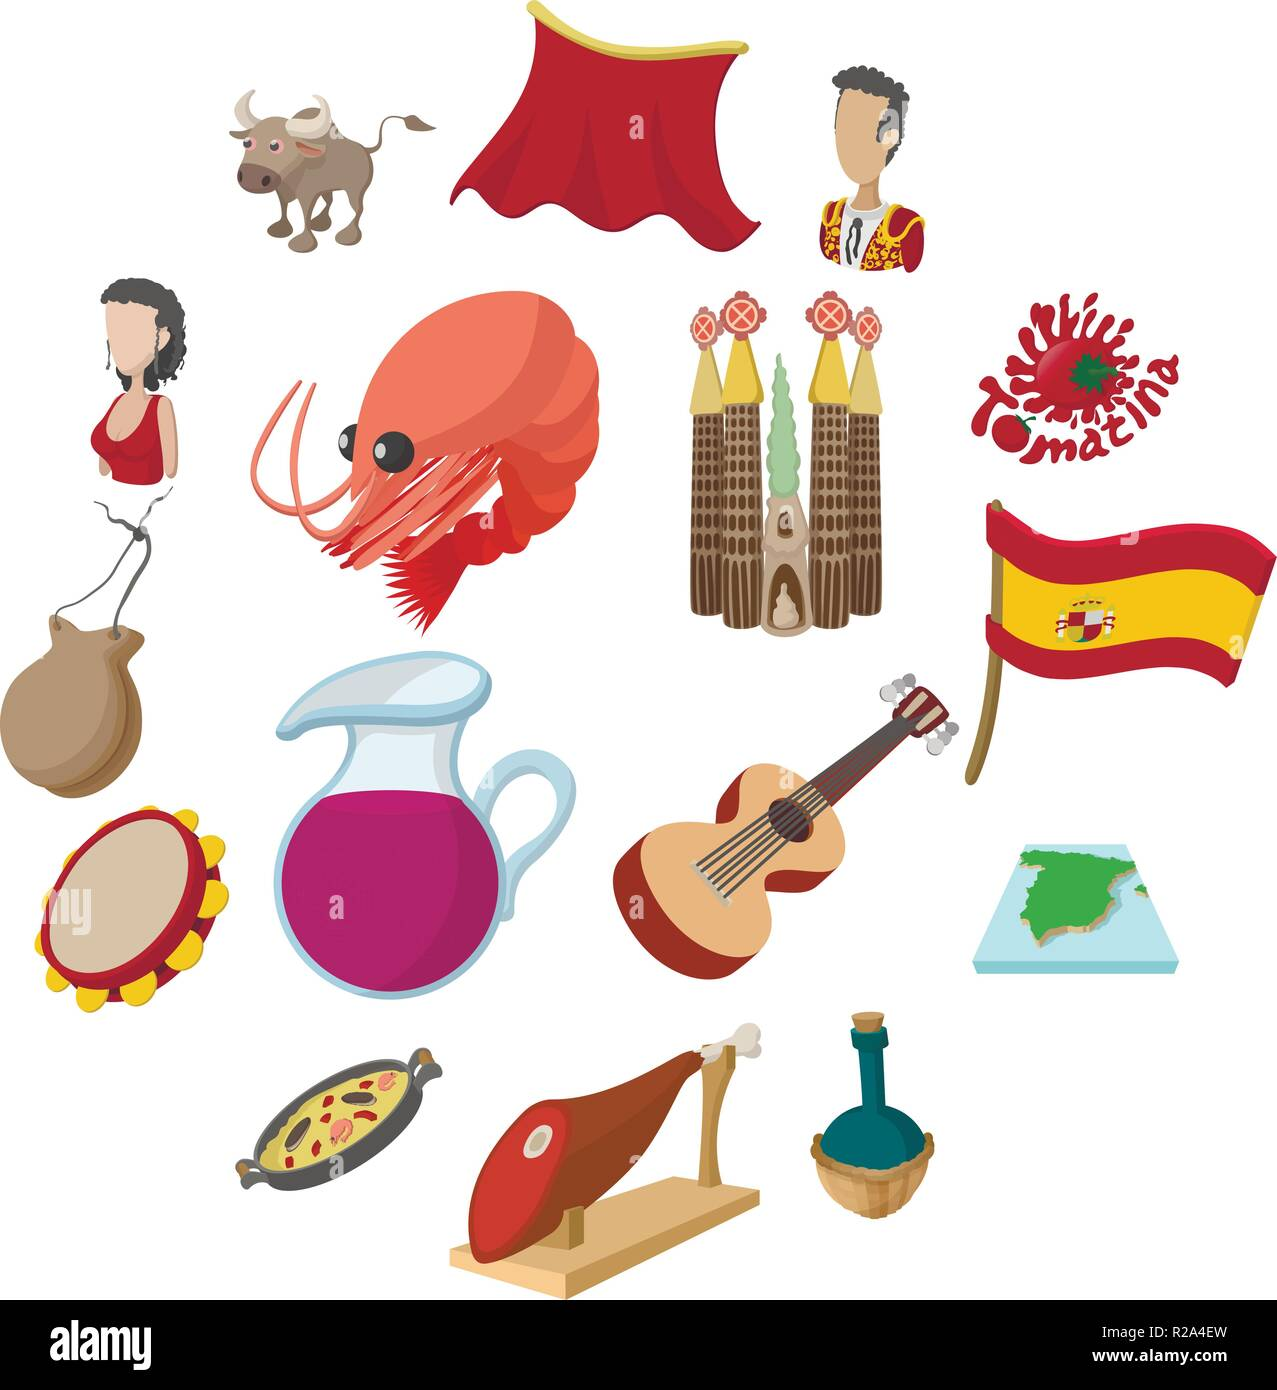 Spain icons in cartoon style for web and mobile devices - Stock Vector